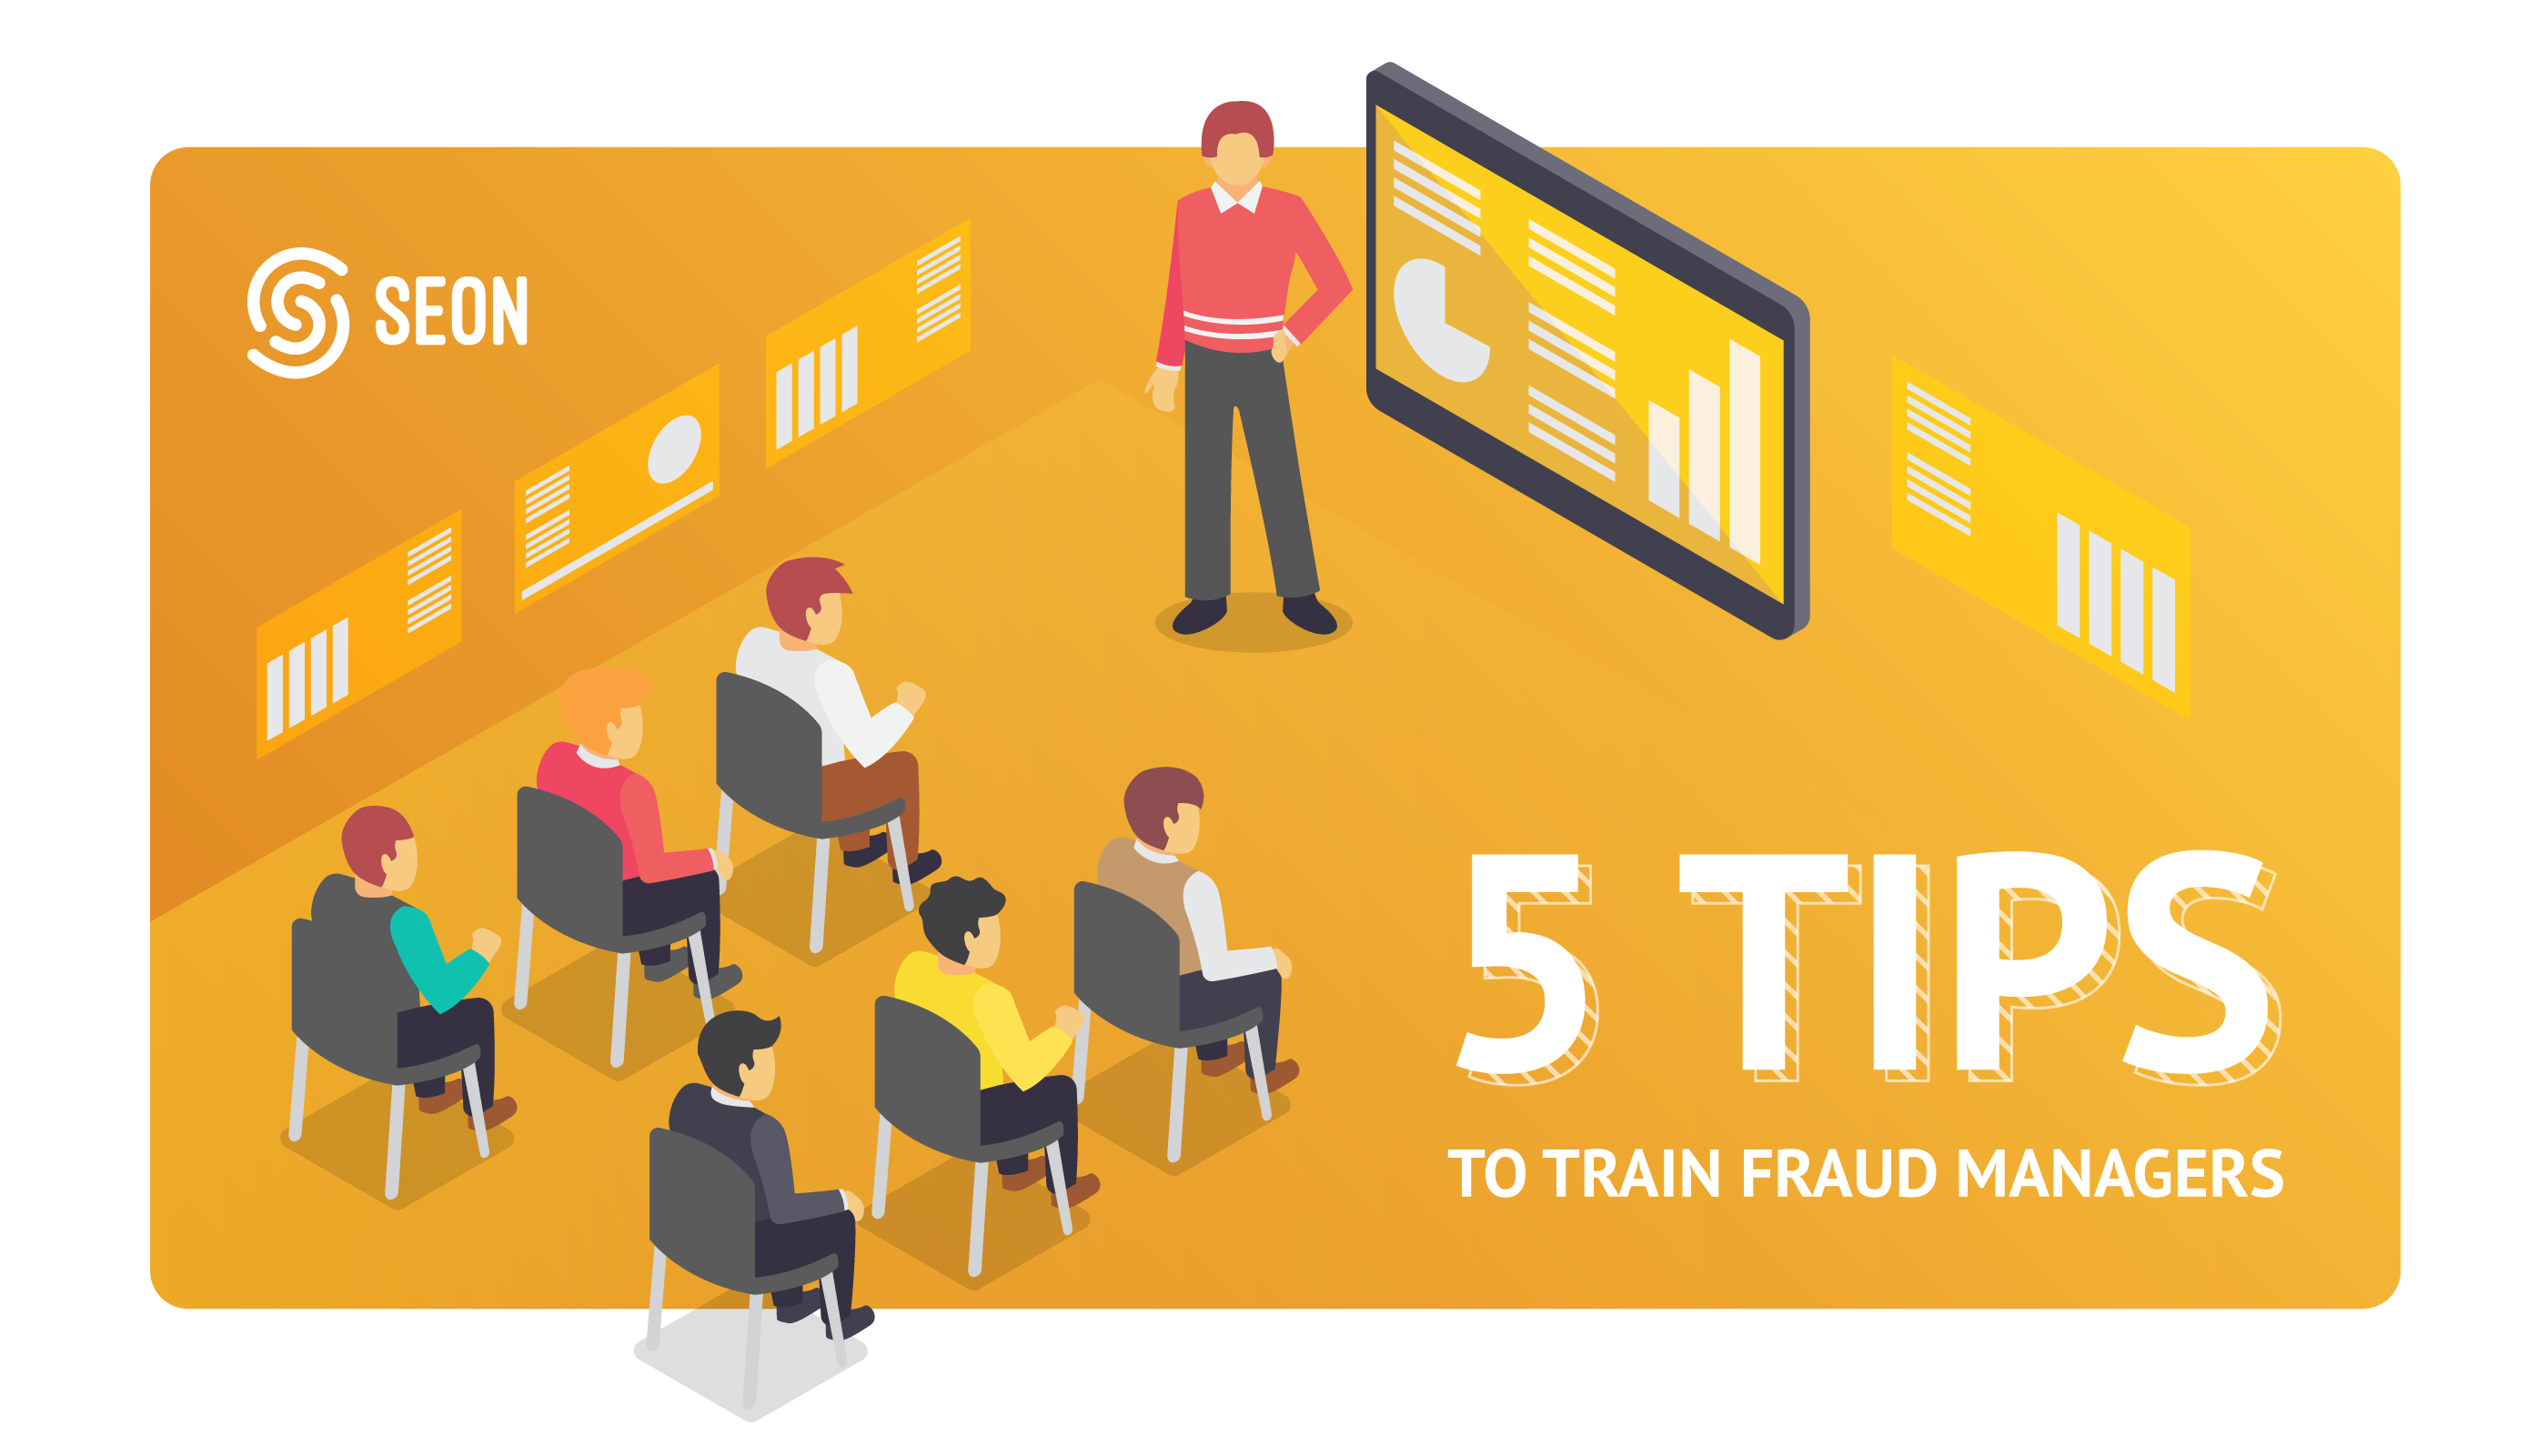 5 tips to train fraud managers